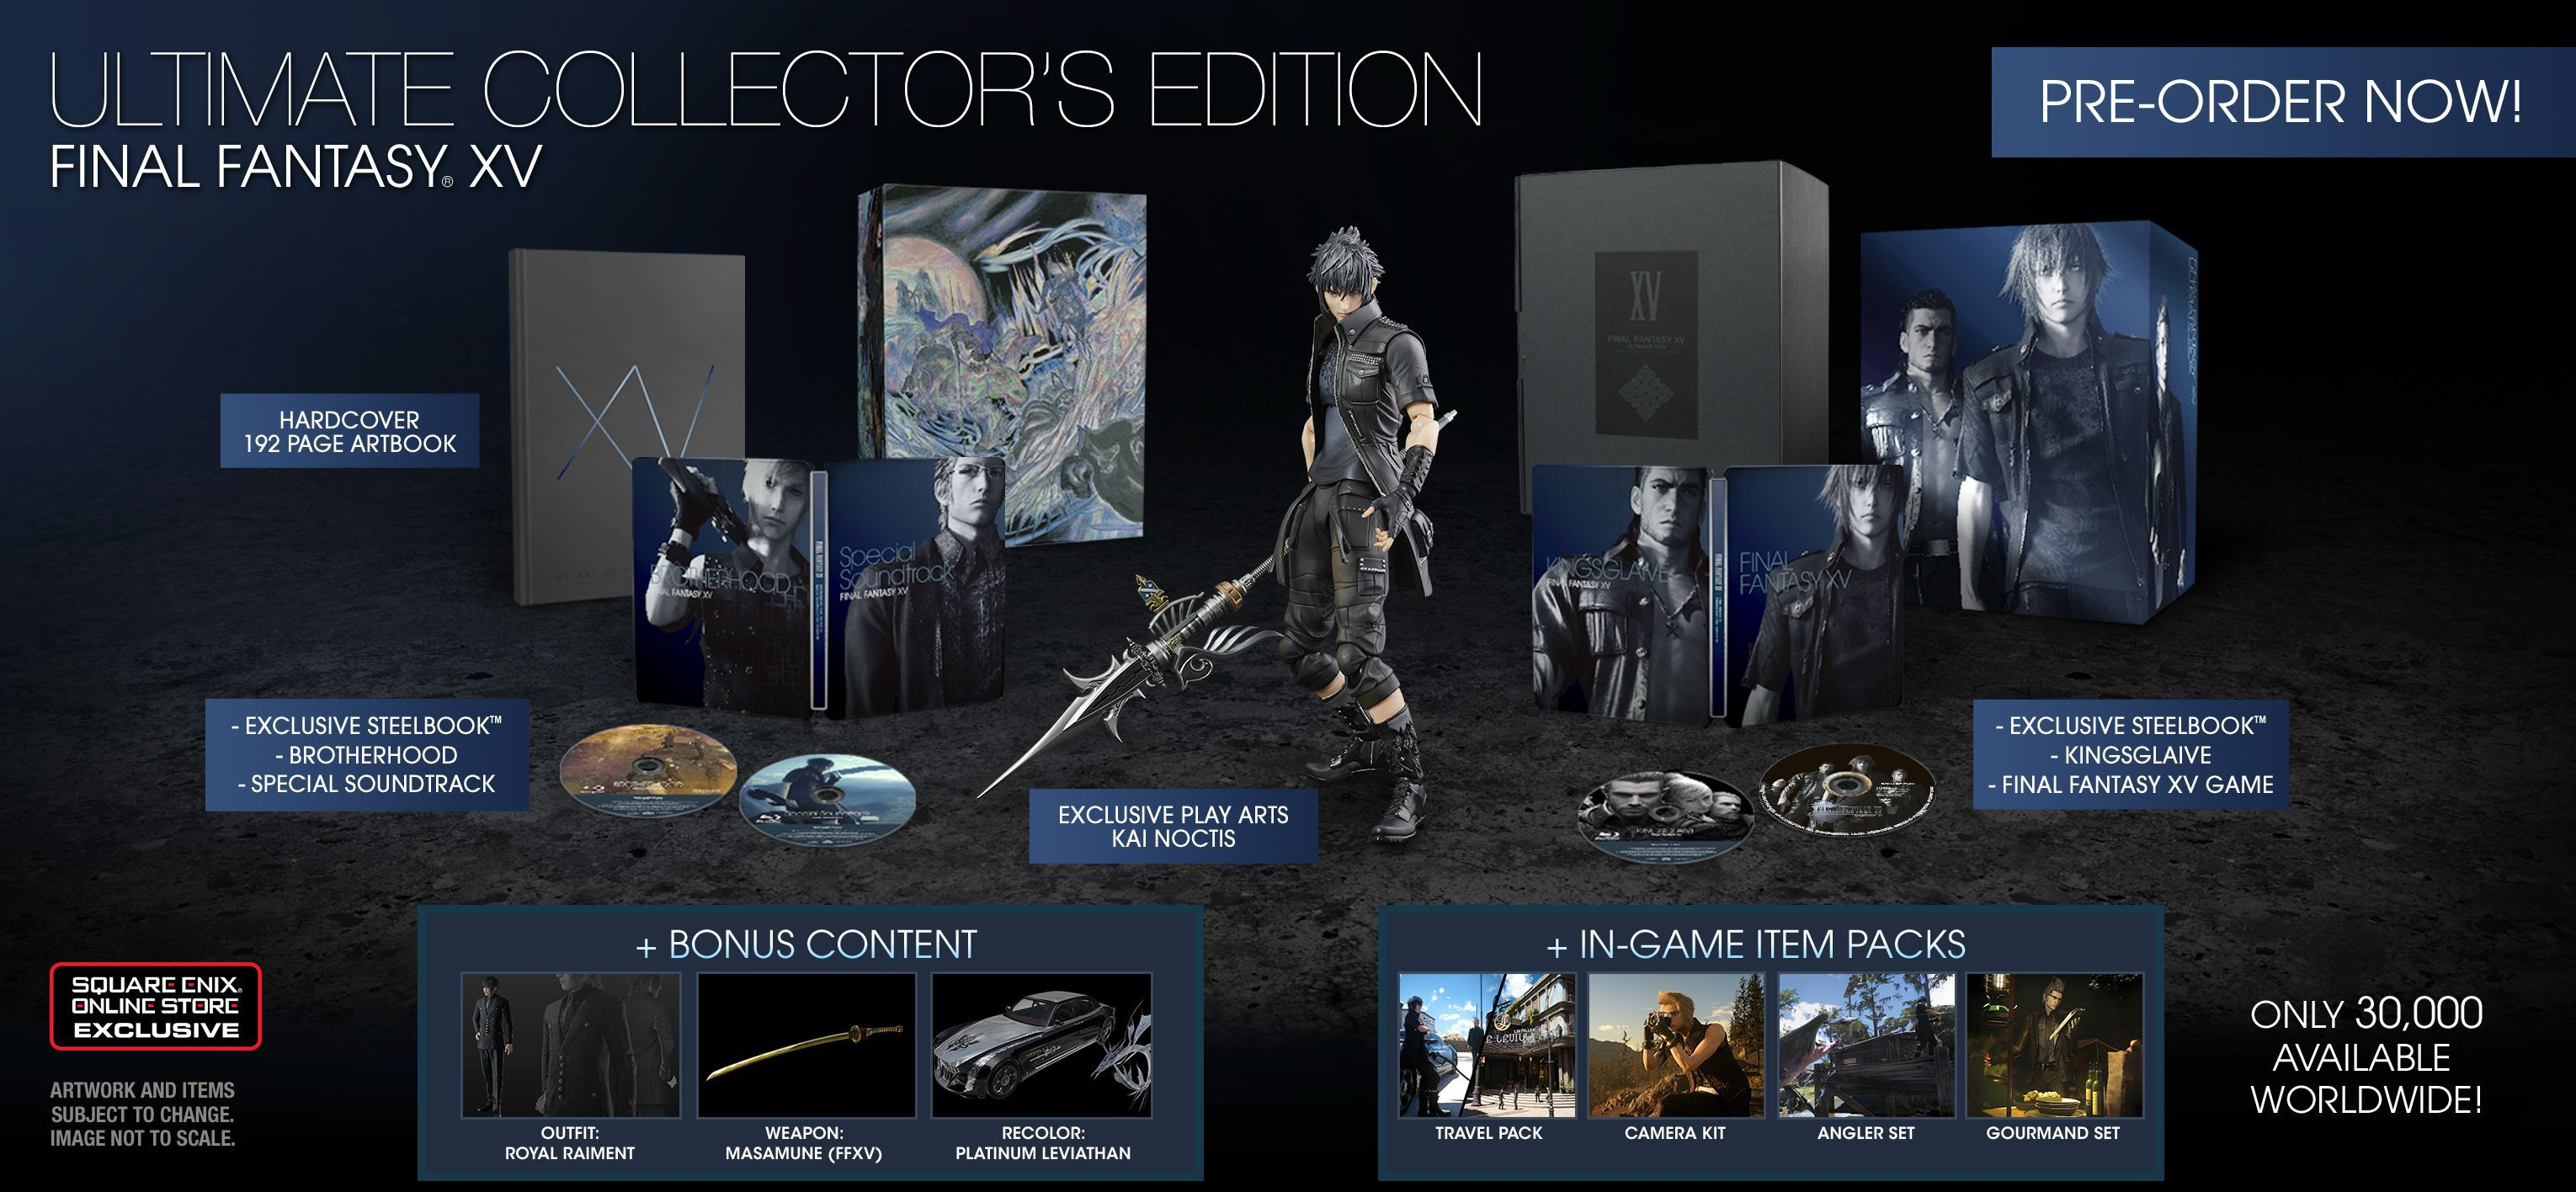 Final Fantasy 15 Ultimate Collectors Edition